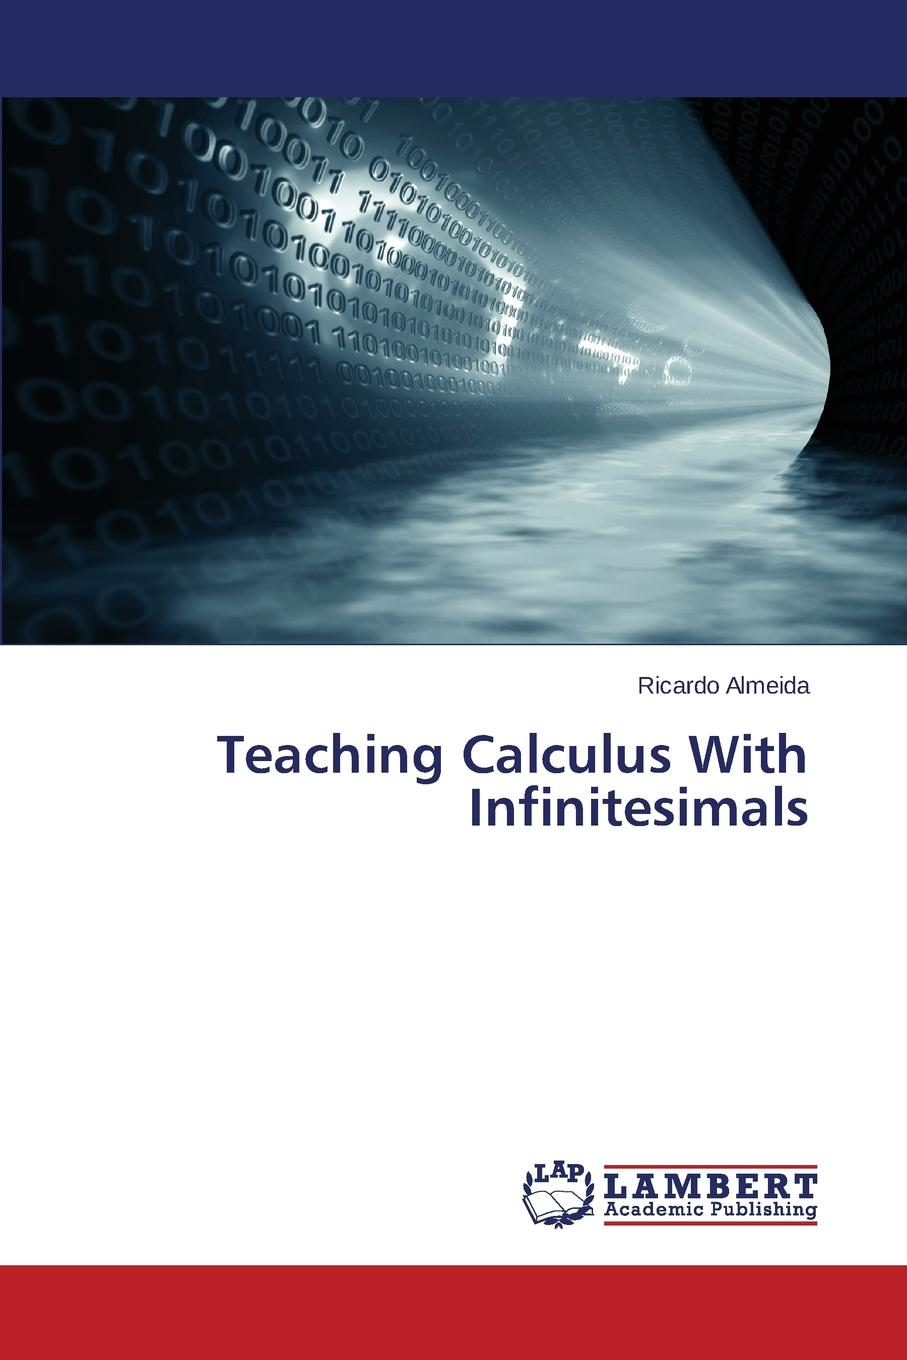 Almeida Ricardo Teaching Calculus With Infinitesimals andrei bourchtein counterexamples on uniform convergence sequences series functions and integrals